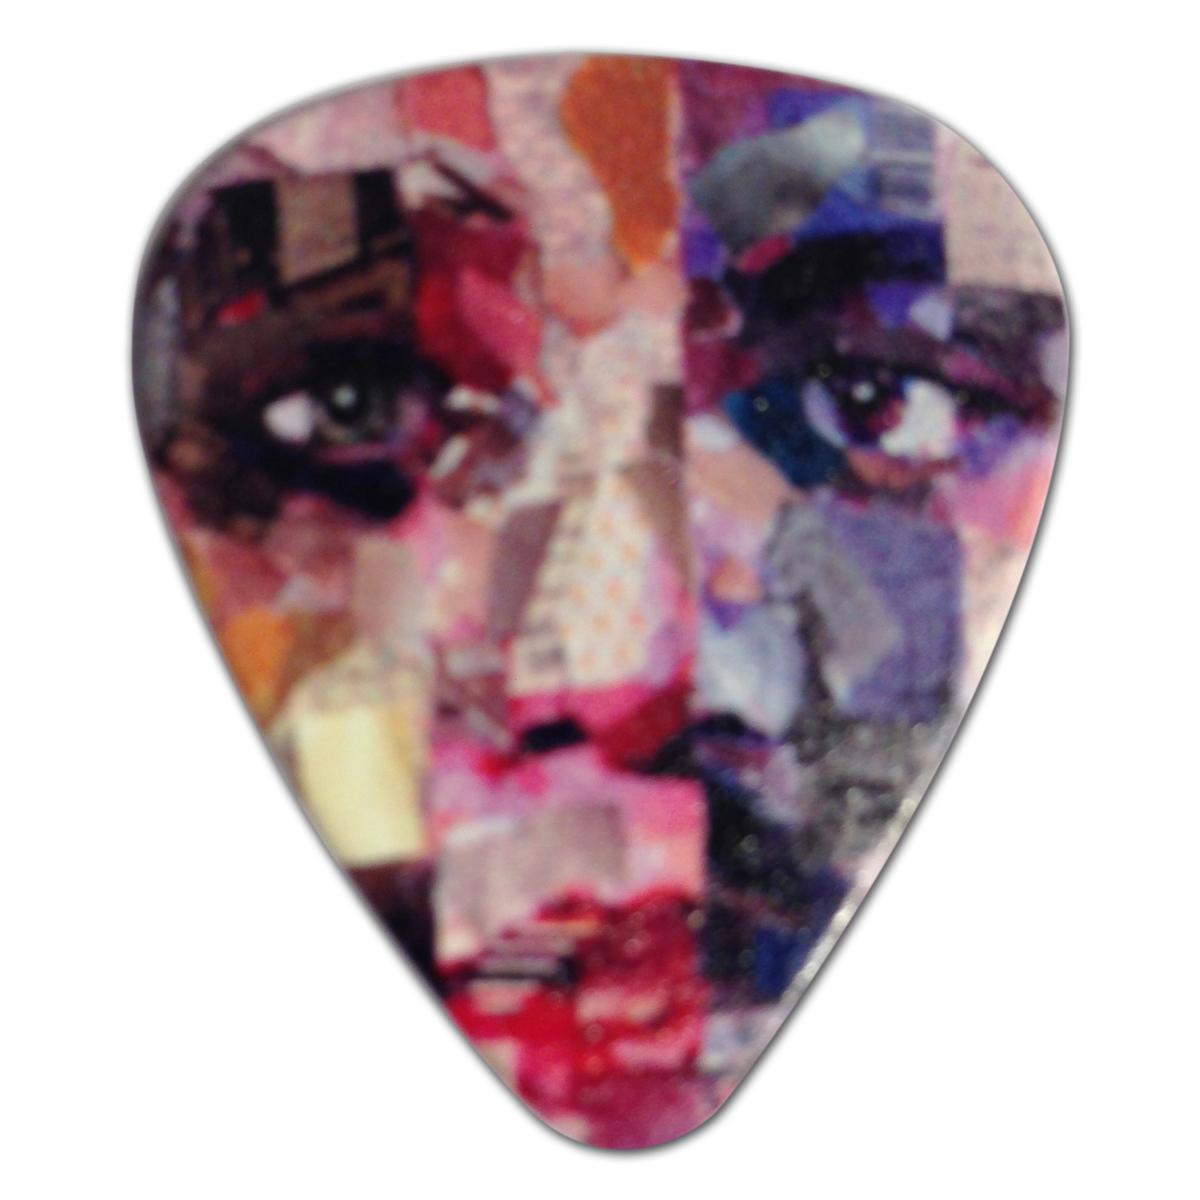 Pat Metheny - KIN (<- ->) Signature Picks